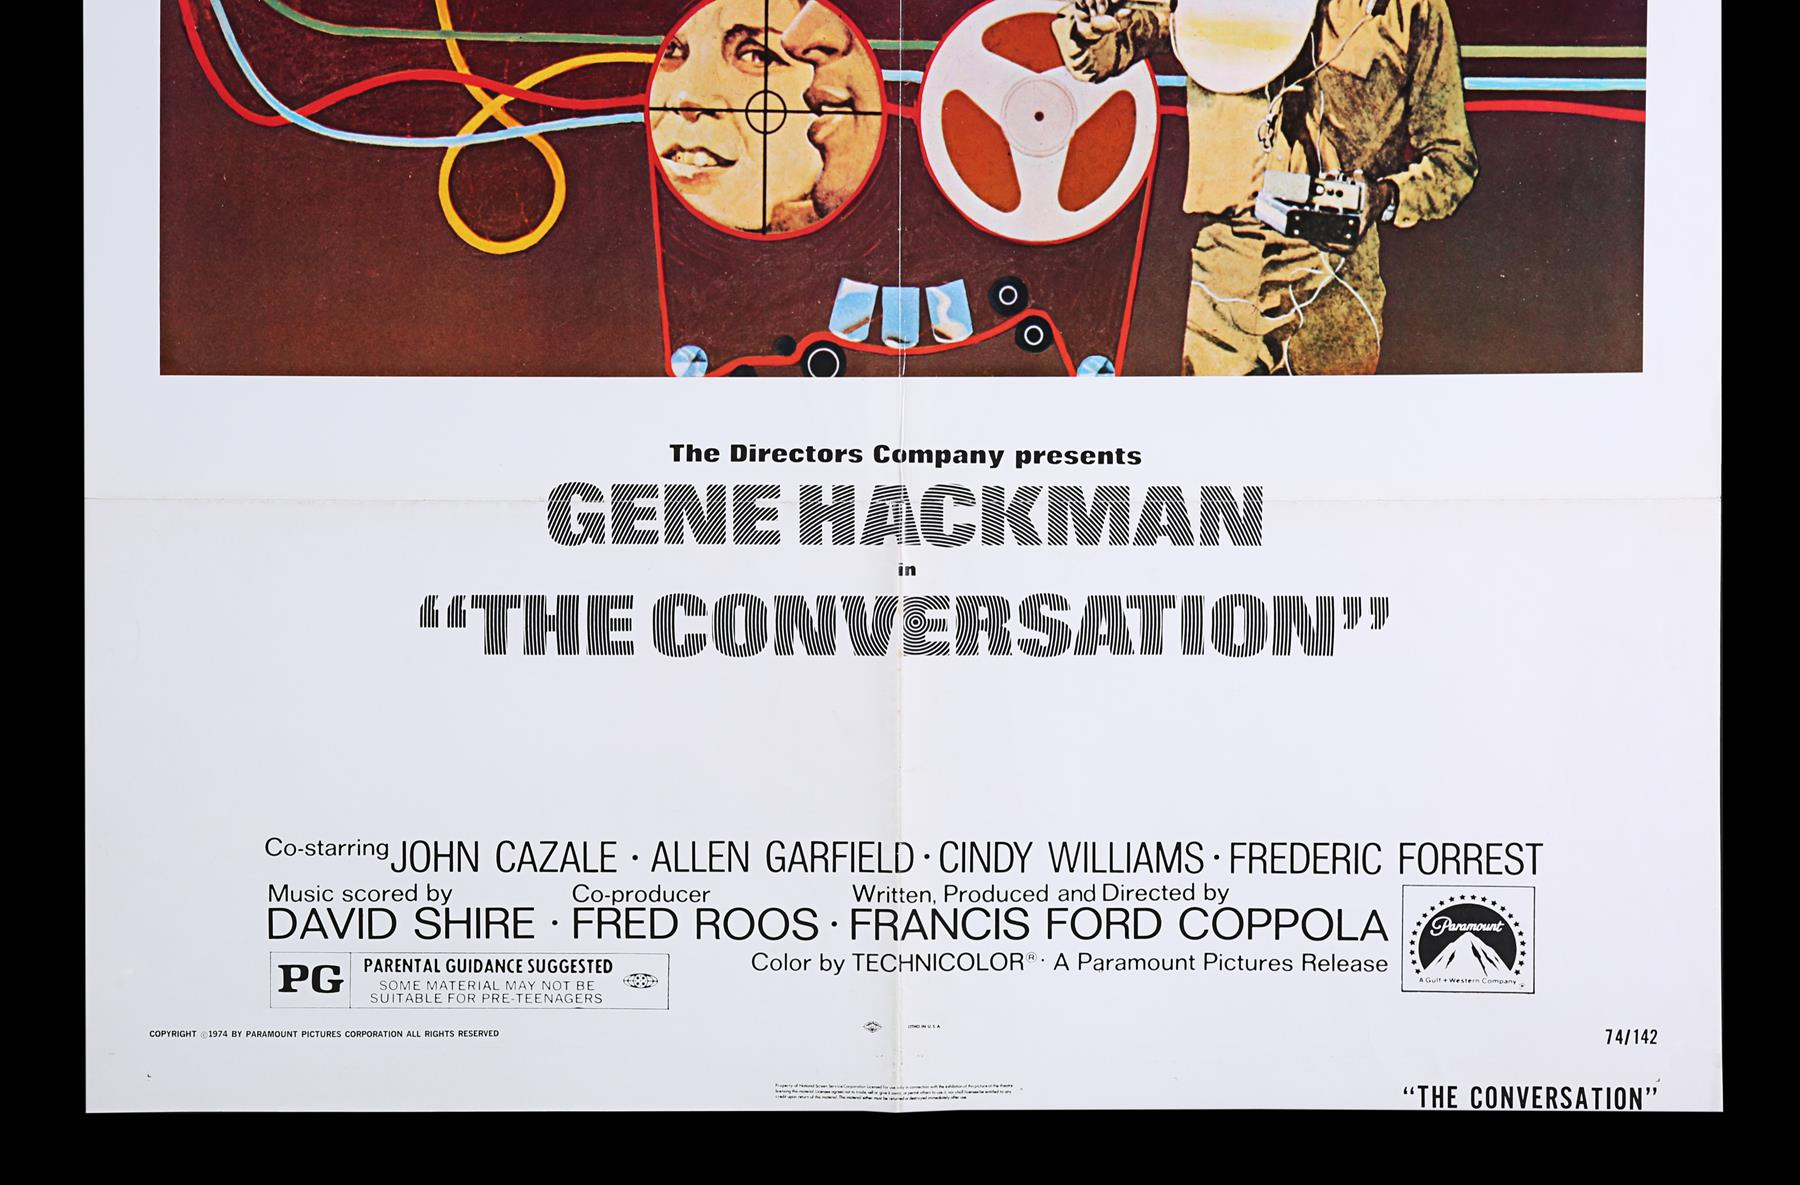 FRENCH CONNECTION (1971), CONVERSATION (1974) - UK Double Crown and US One-Sheet, 1971, 1974 - Image 4 of 8